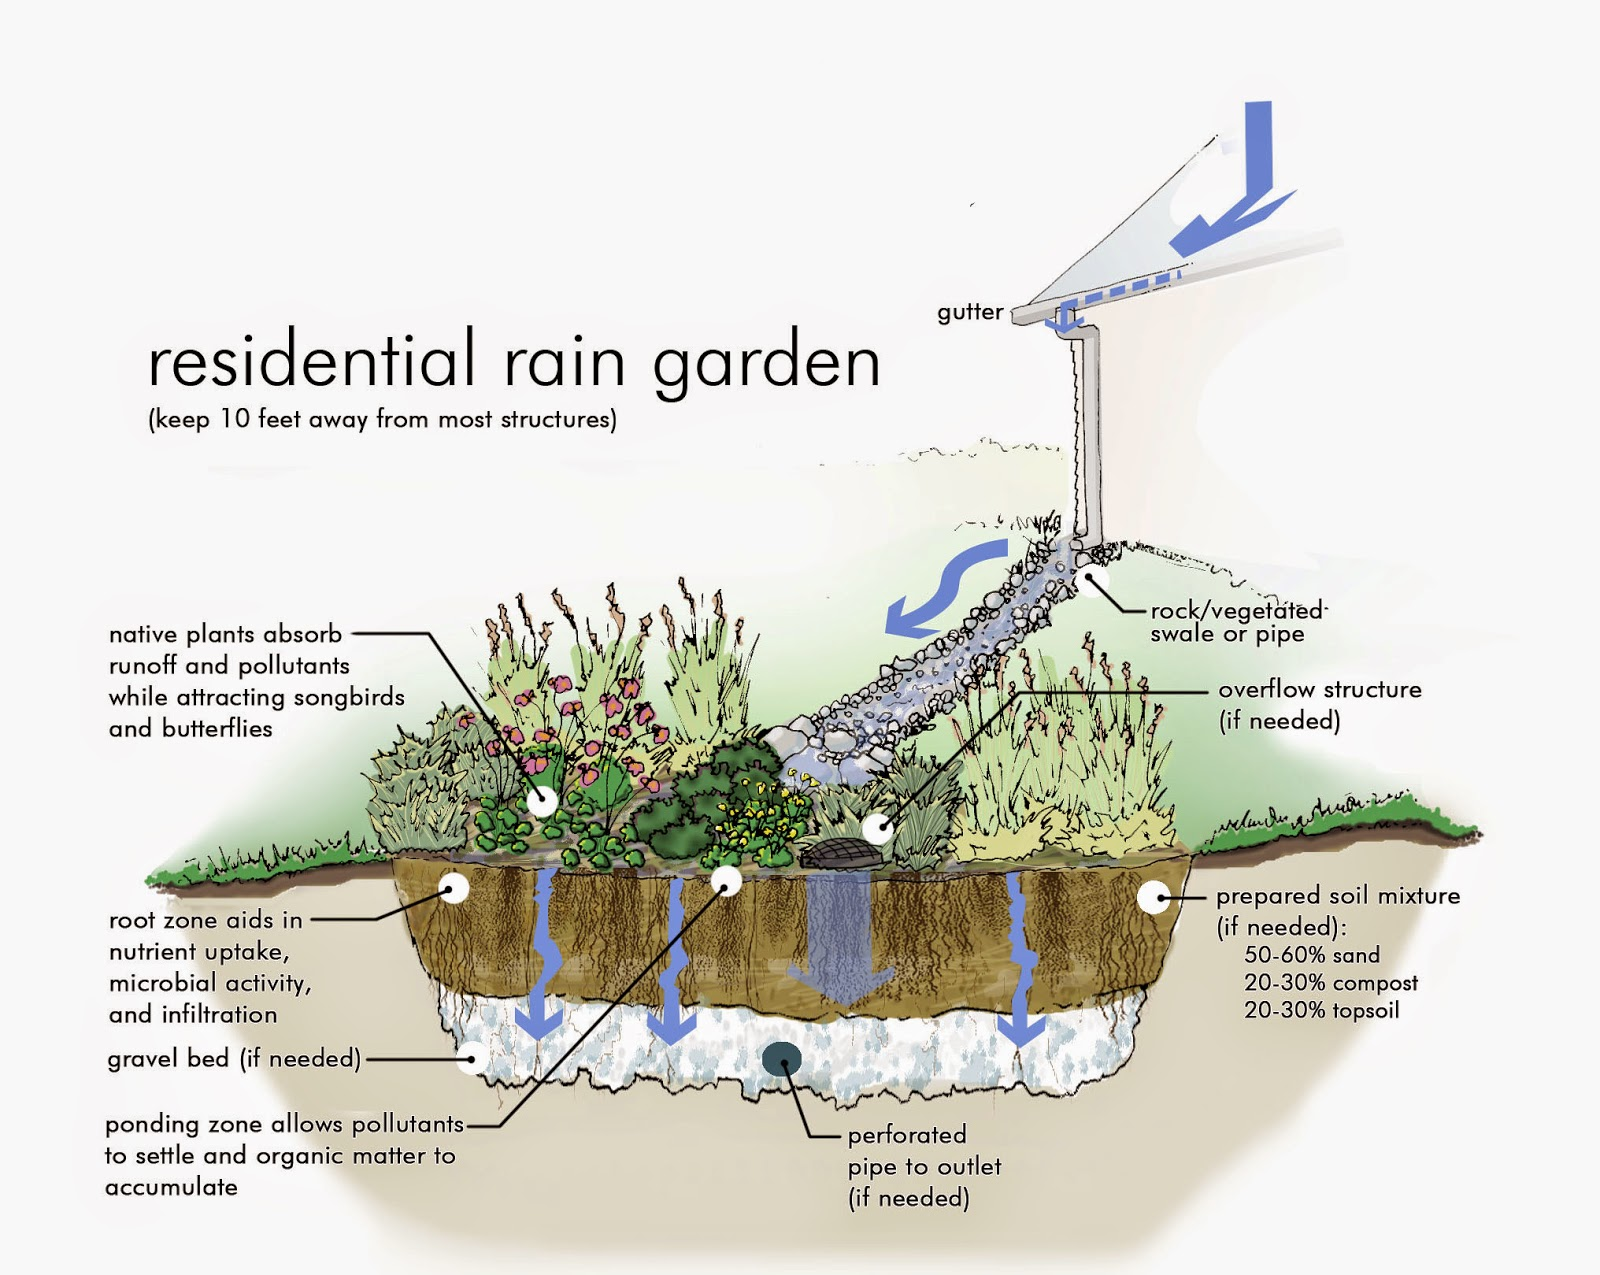 Rain gardens absorb runoff and reduce pollutants